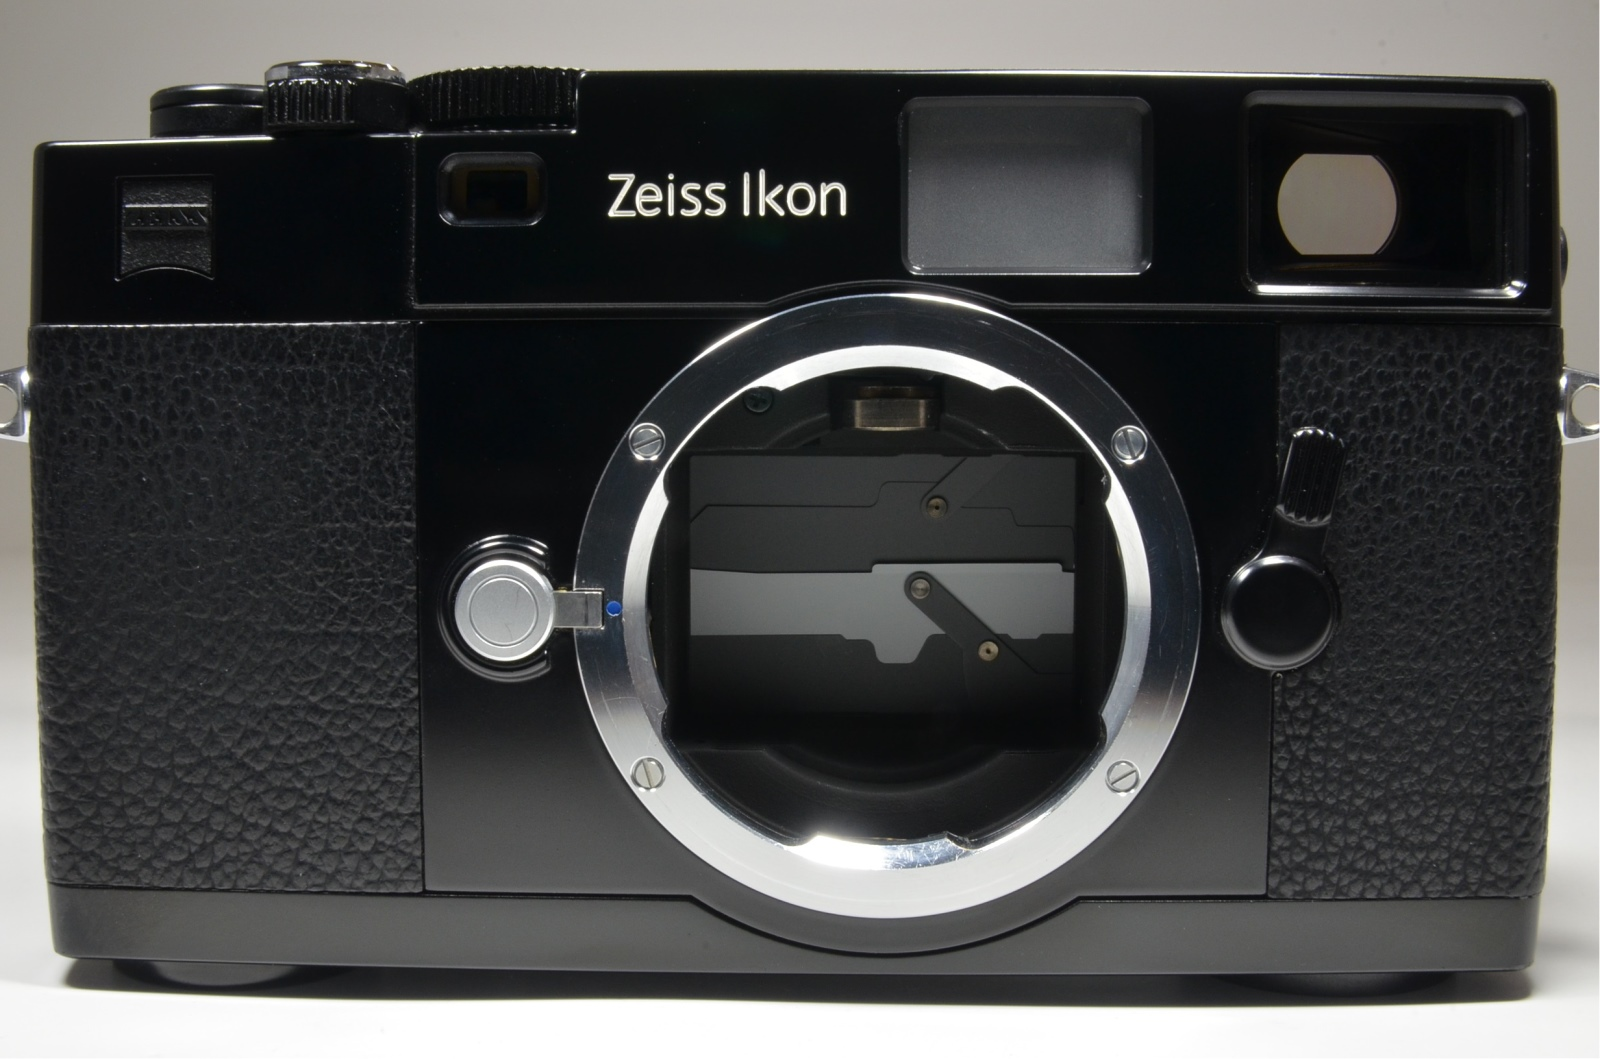 zeiss ikon zm 35mm rangefinder film camera in black with strap